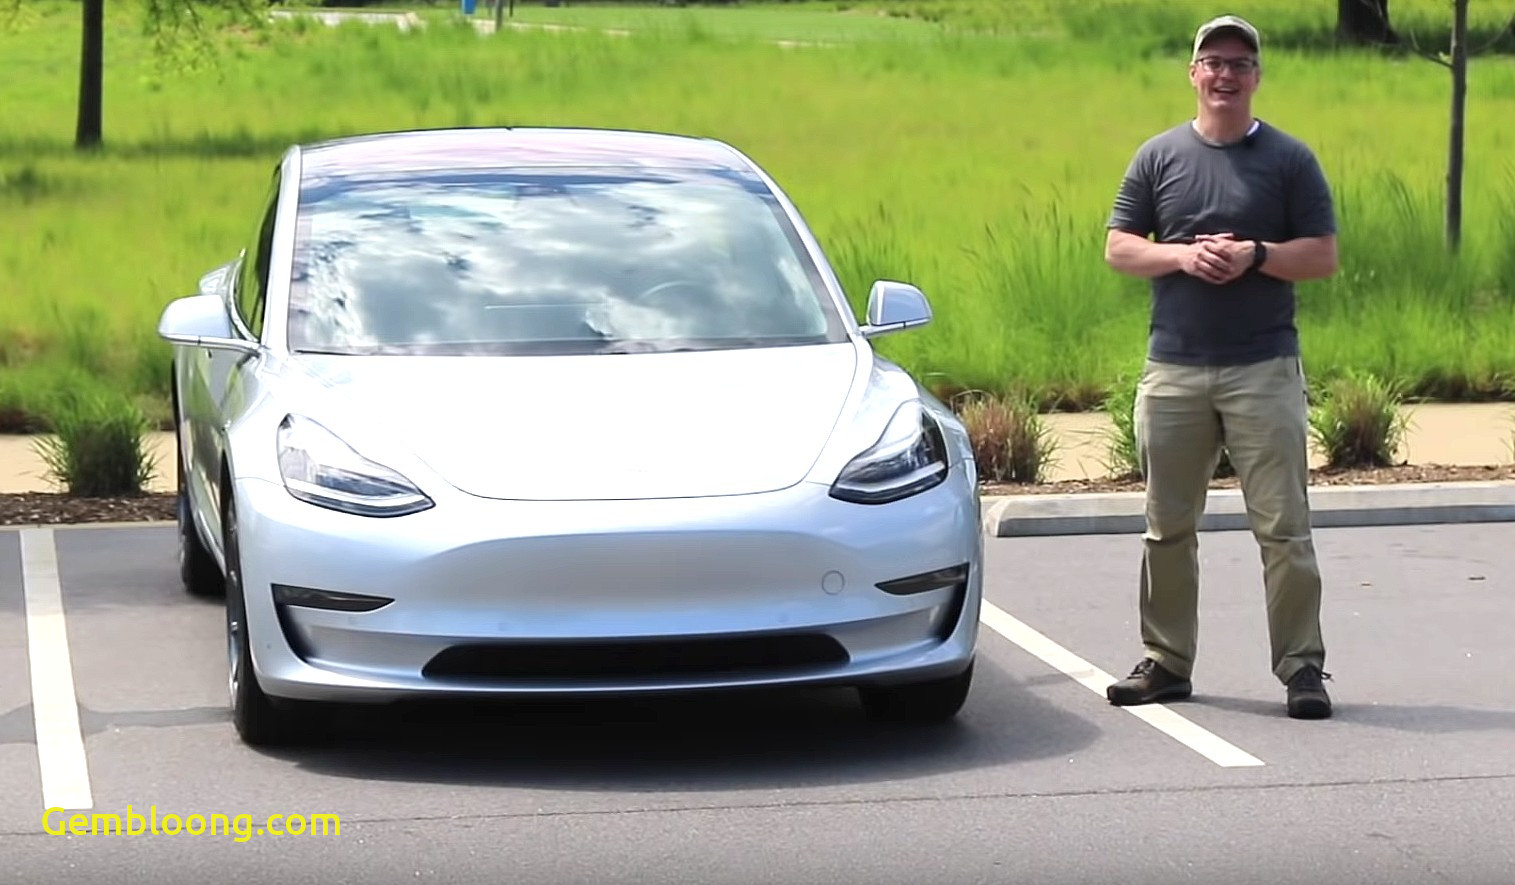 Tesla Ownership Best Of Tesla Model 3 Owner Lays the Case On why the Us is Better